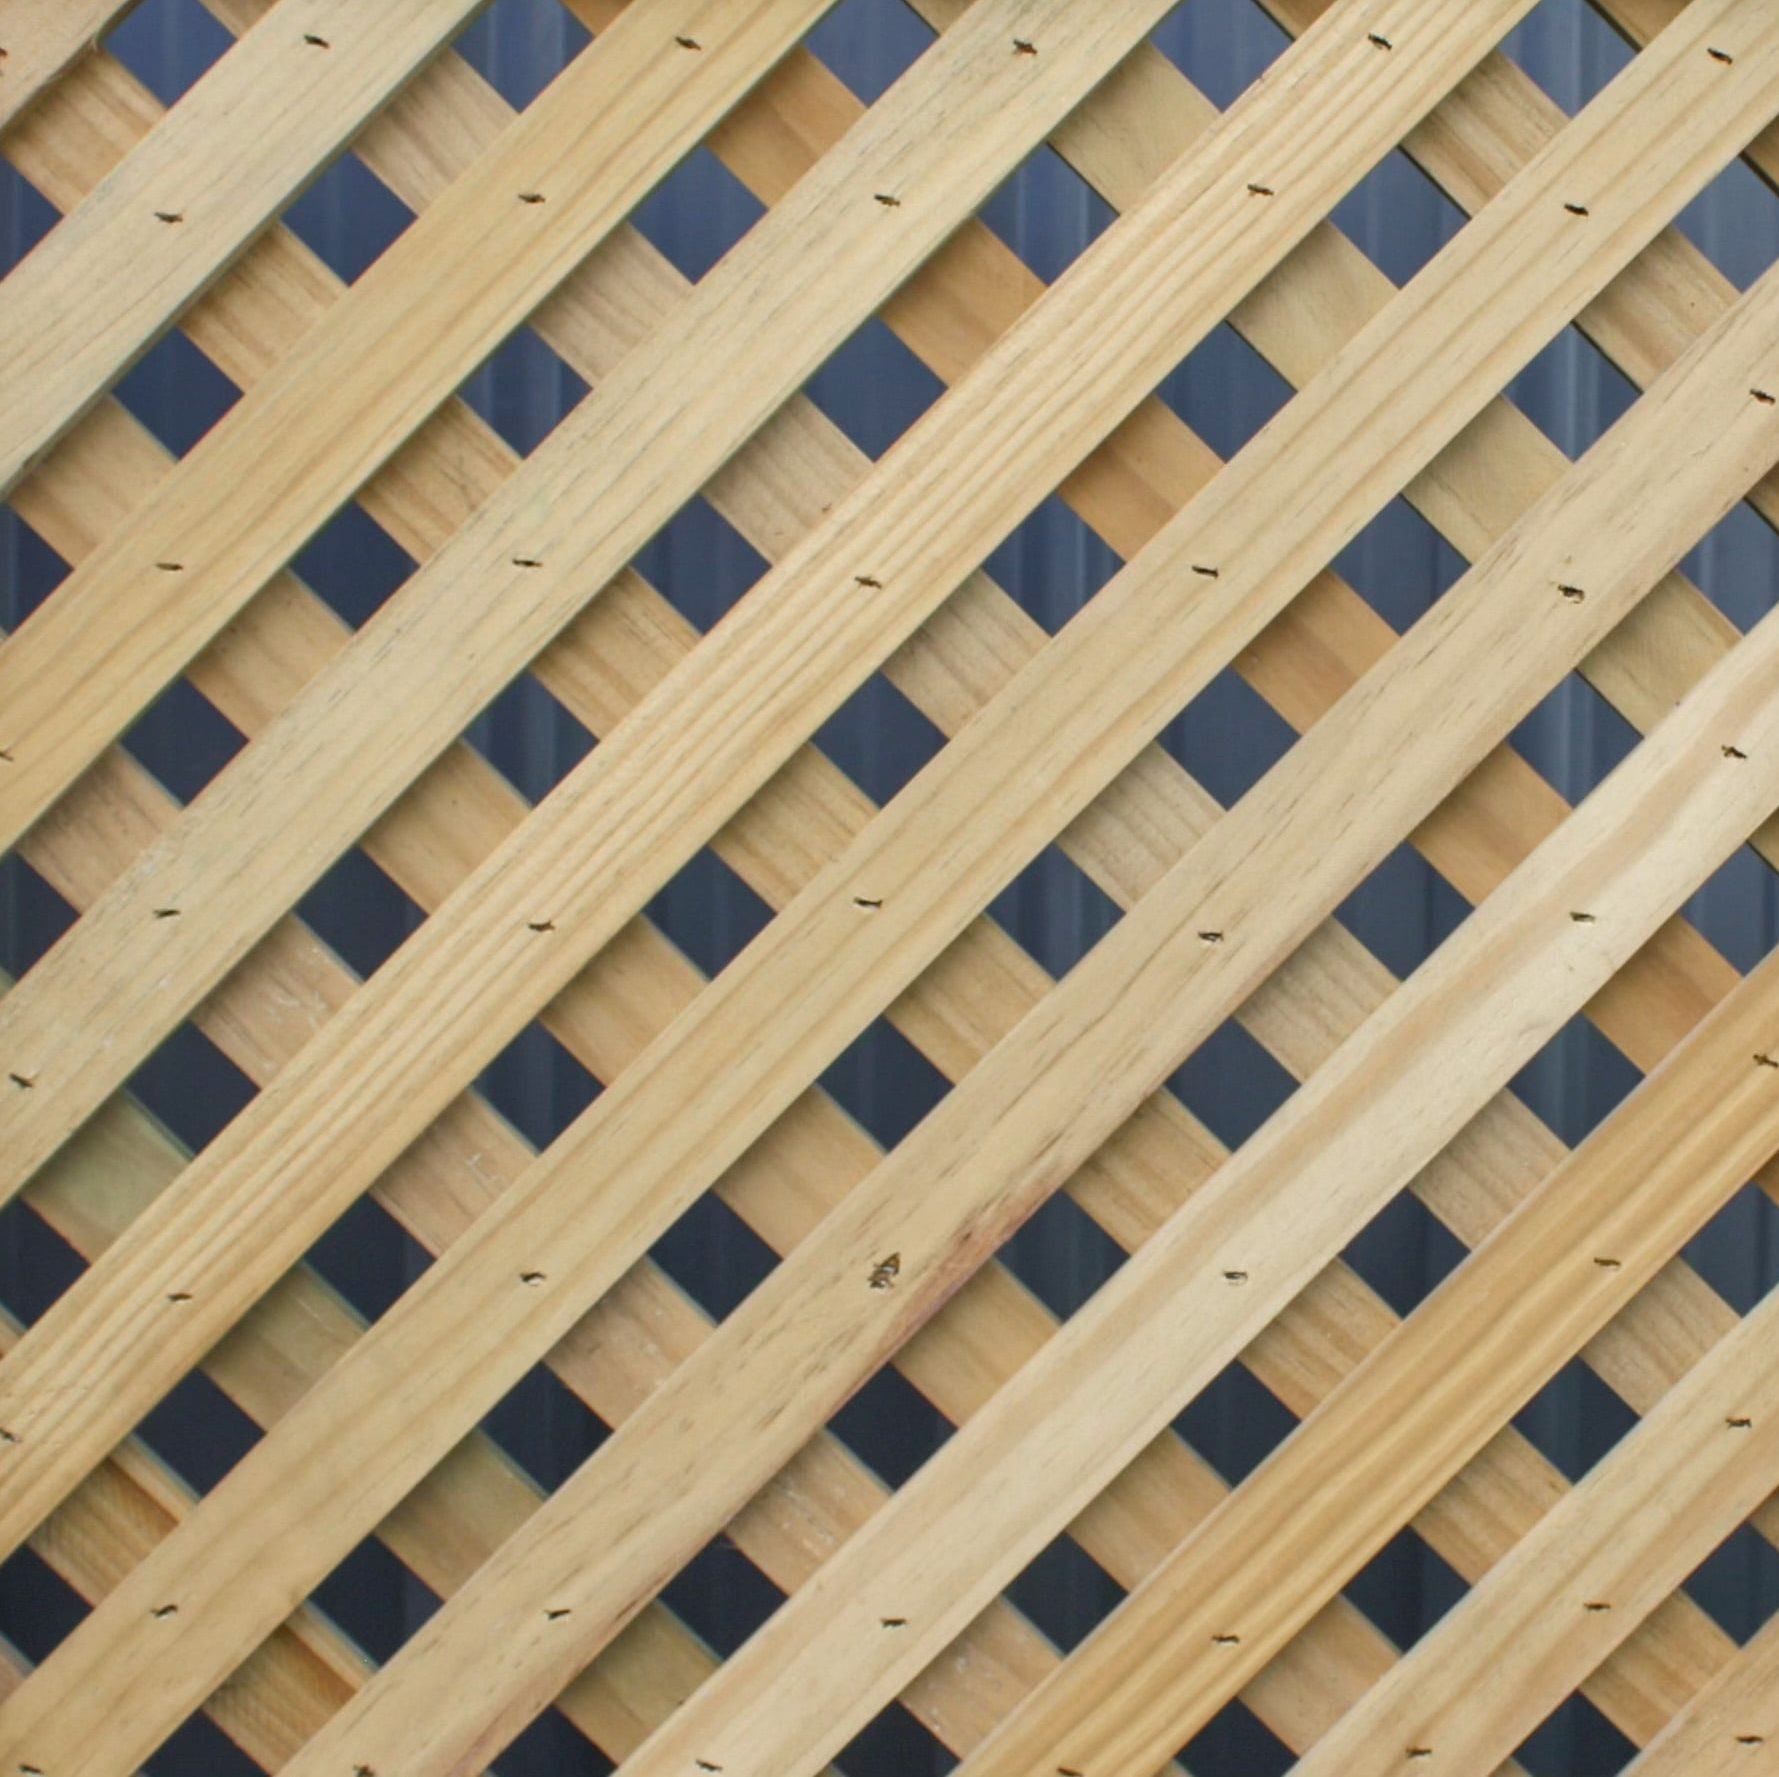 A picture of a 25mm diagonal fence design